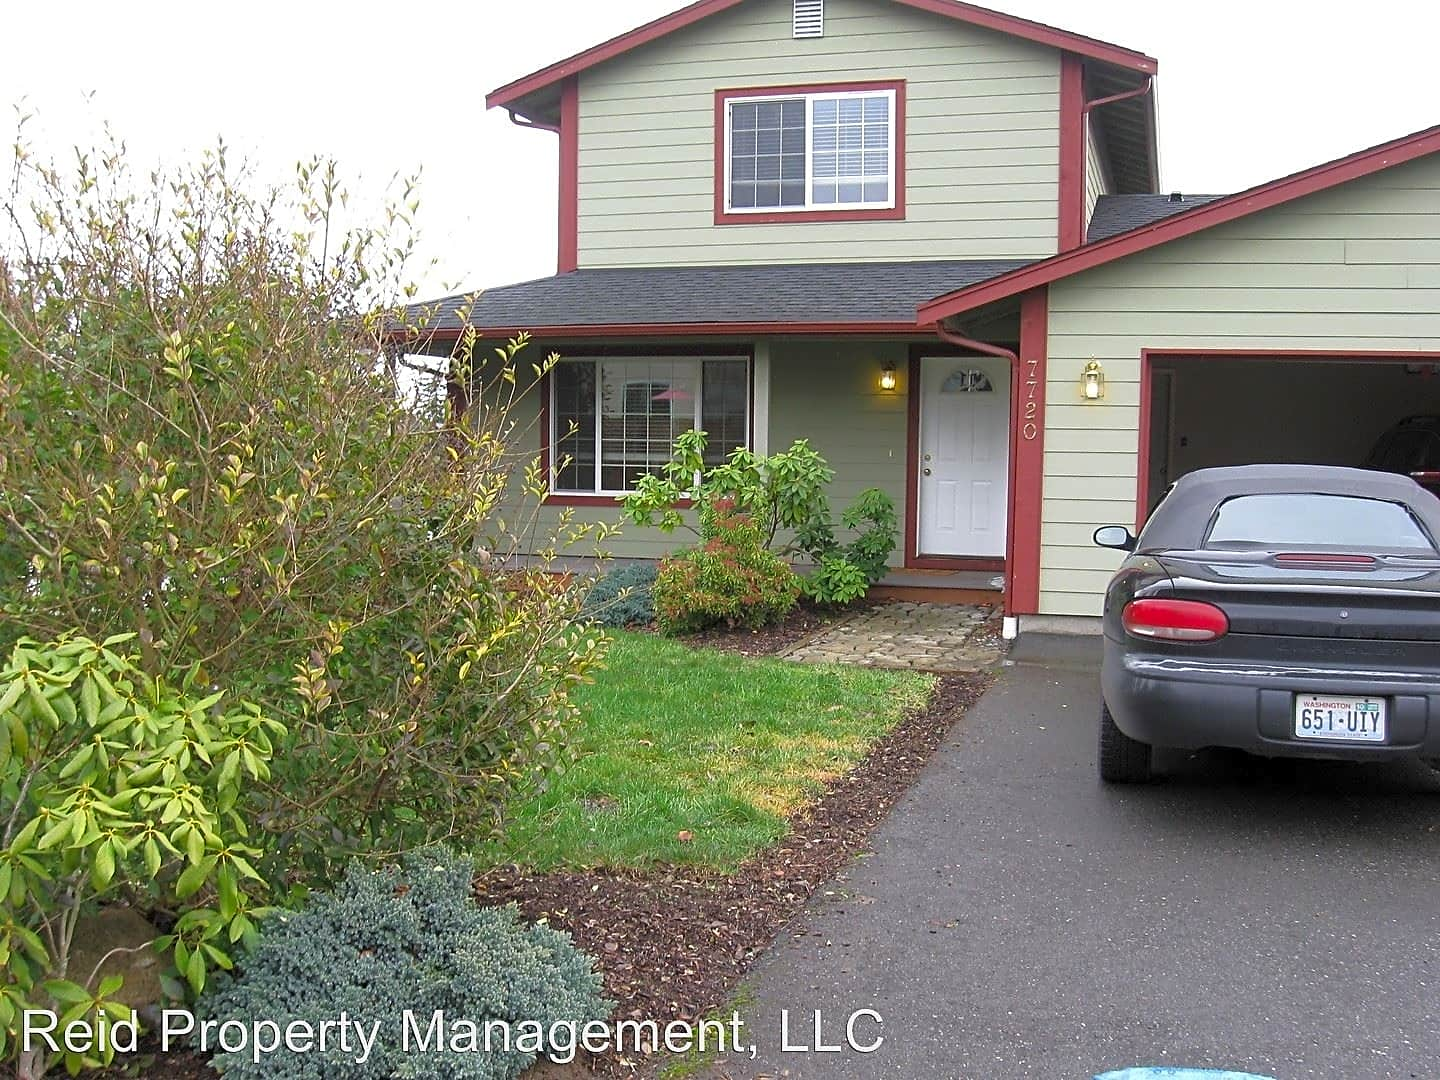 7720 rita road northeast apartments bremerton wa 98311 for Art institute of seattle parking garage